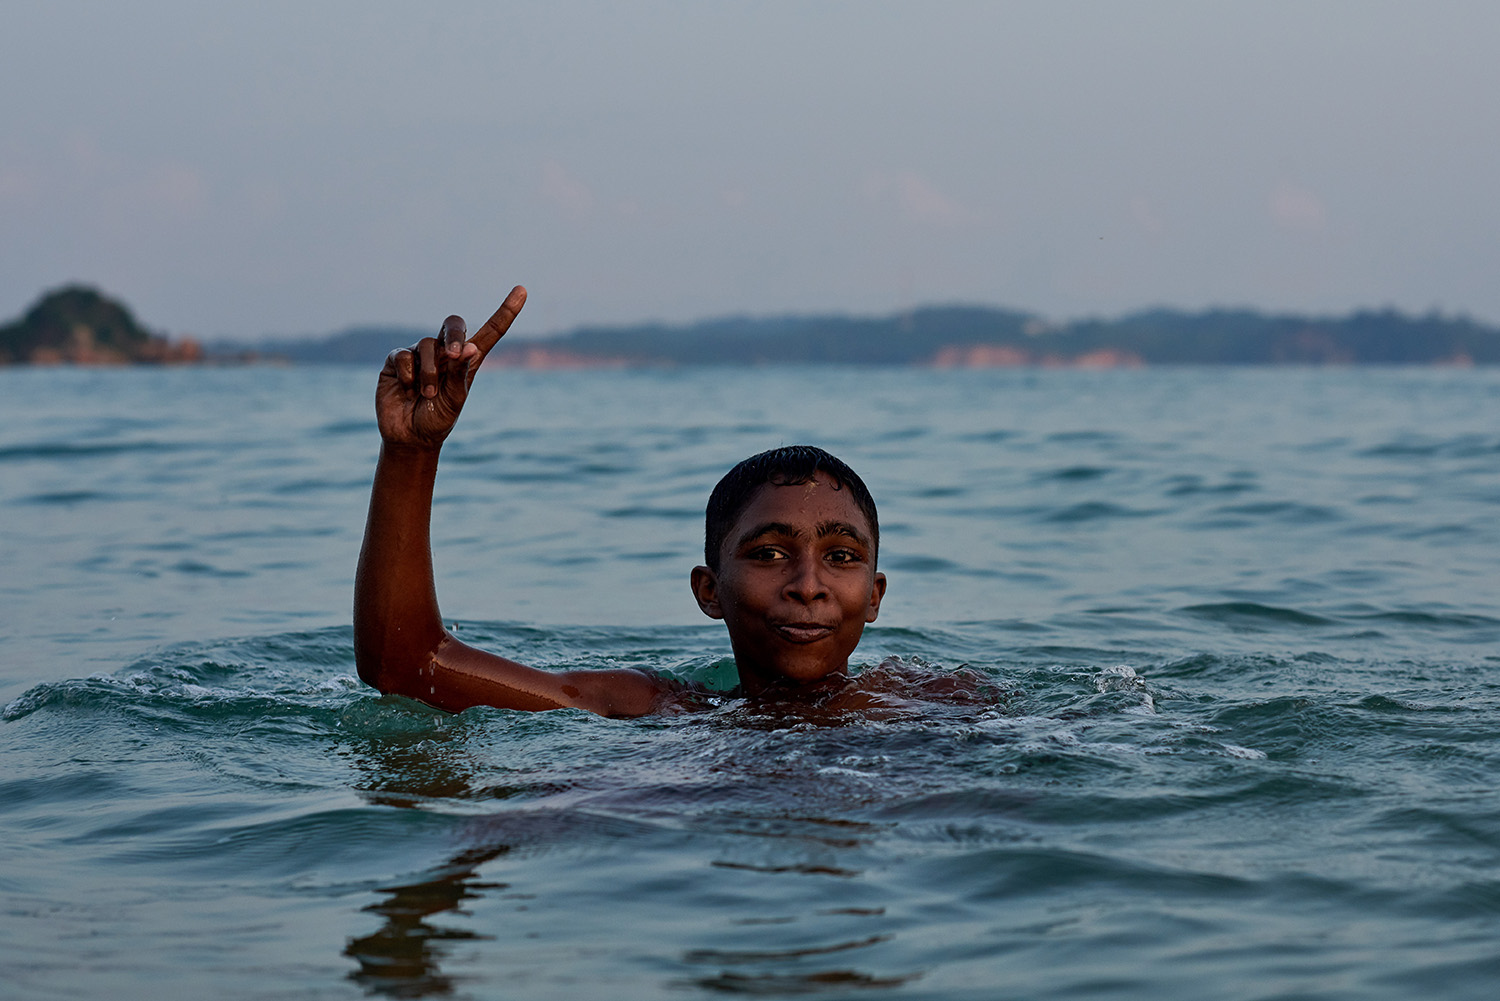 Swimming in the Indian Ocean